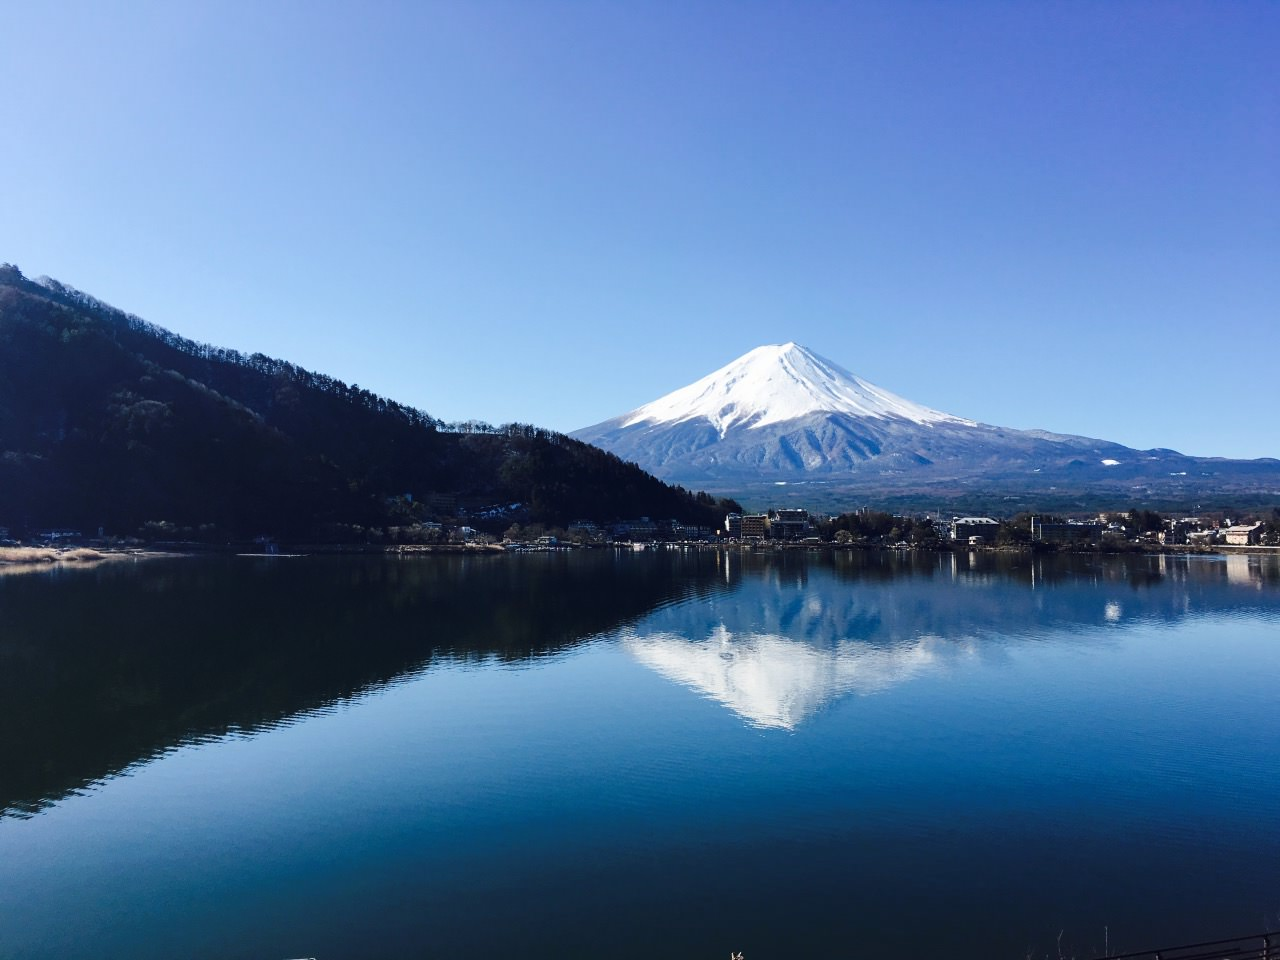 It is the lucky moment for me to take a full shot of Mount Fuji.